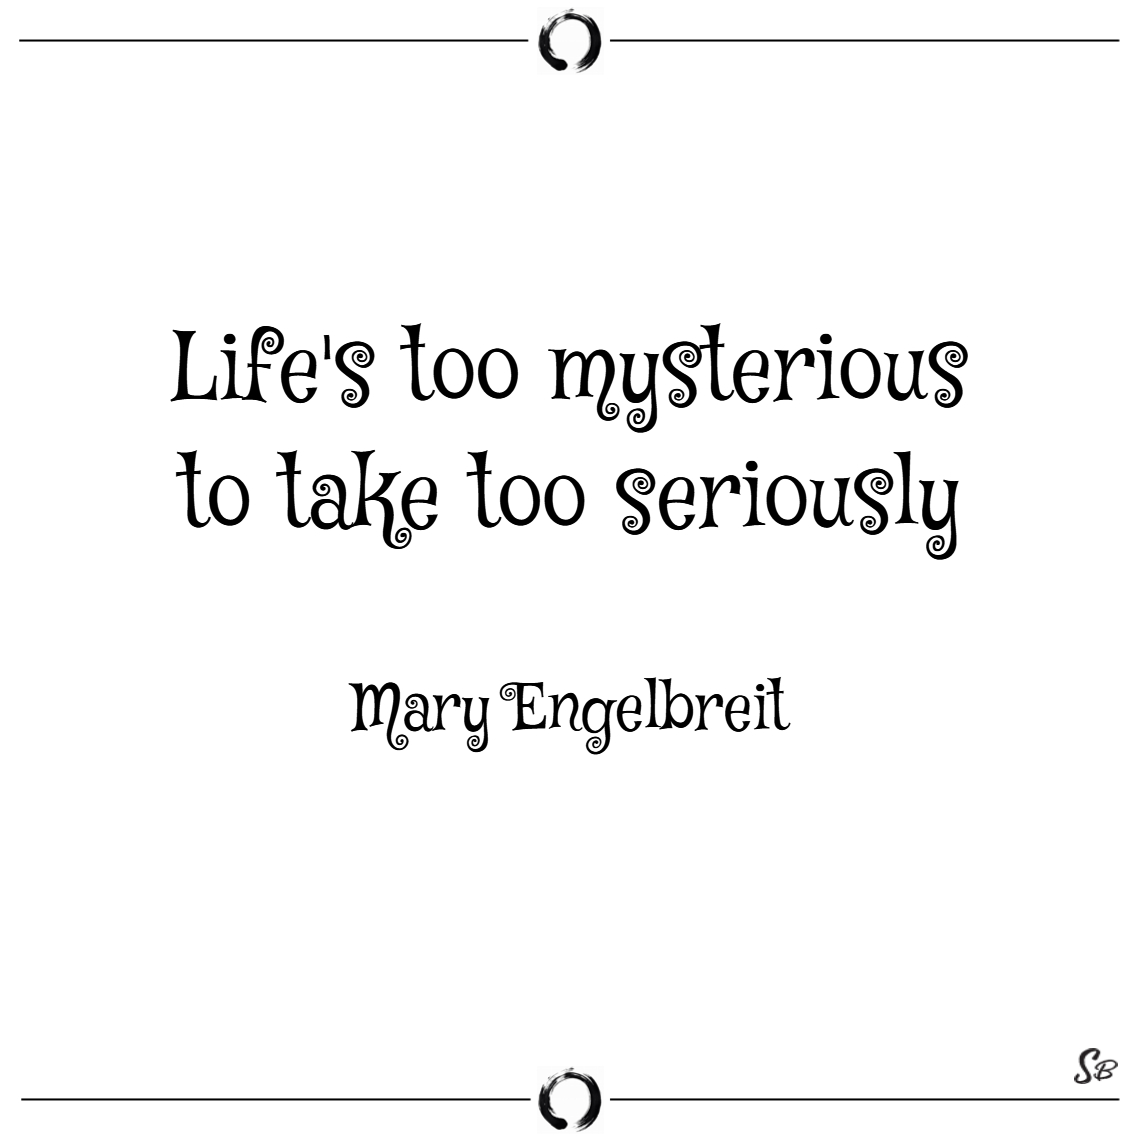 Life's too mysterious to take too seriously. – mar